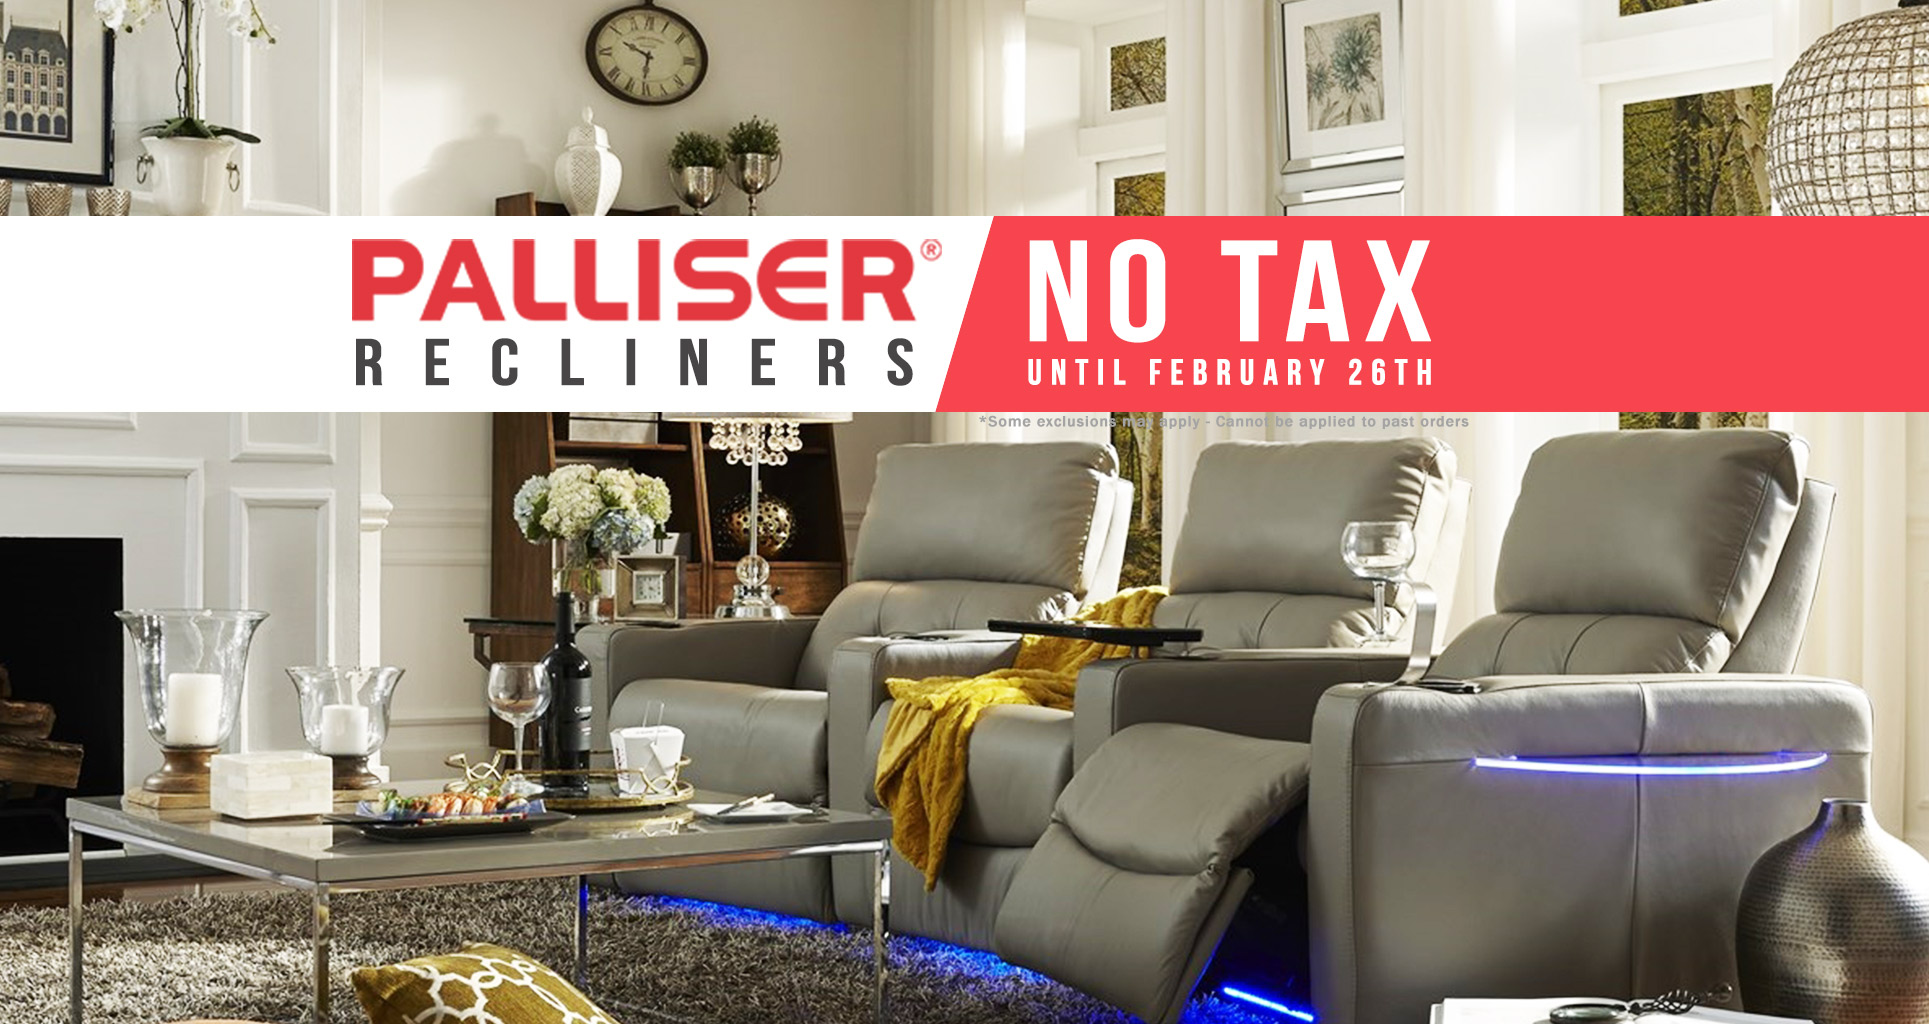 Palliser Recliners No Tax Sale Coulters Furniture Windsor Home